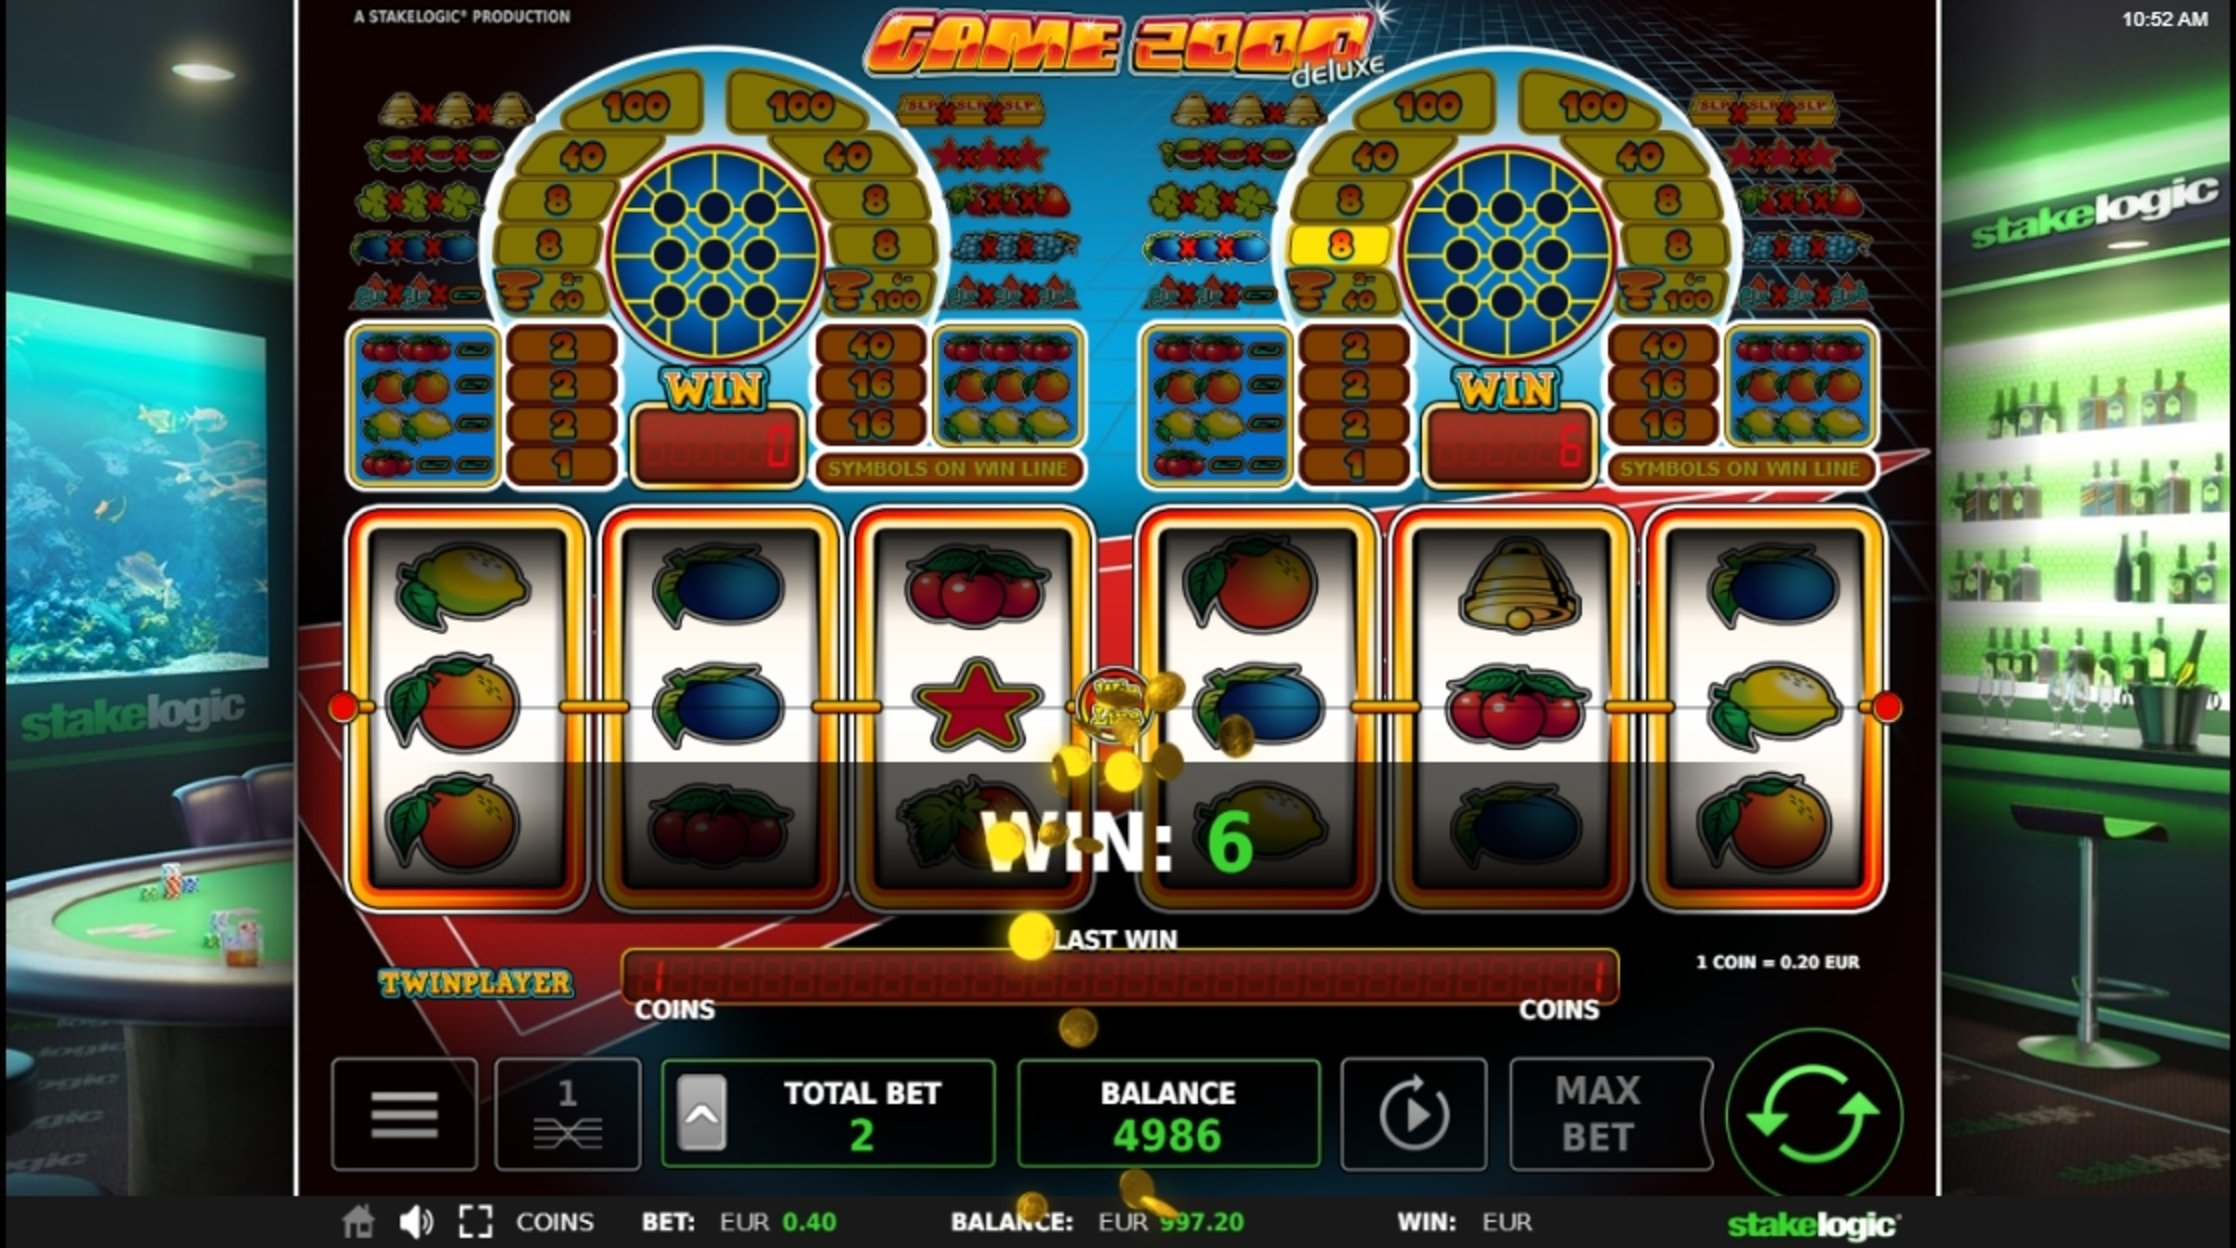 Win Money in Game 2000 Free Slot Game by Stakelogic